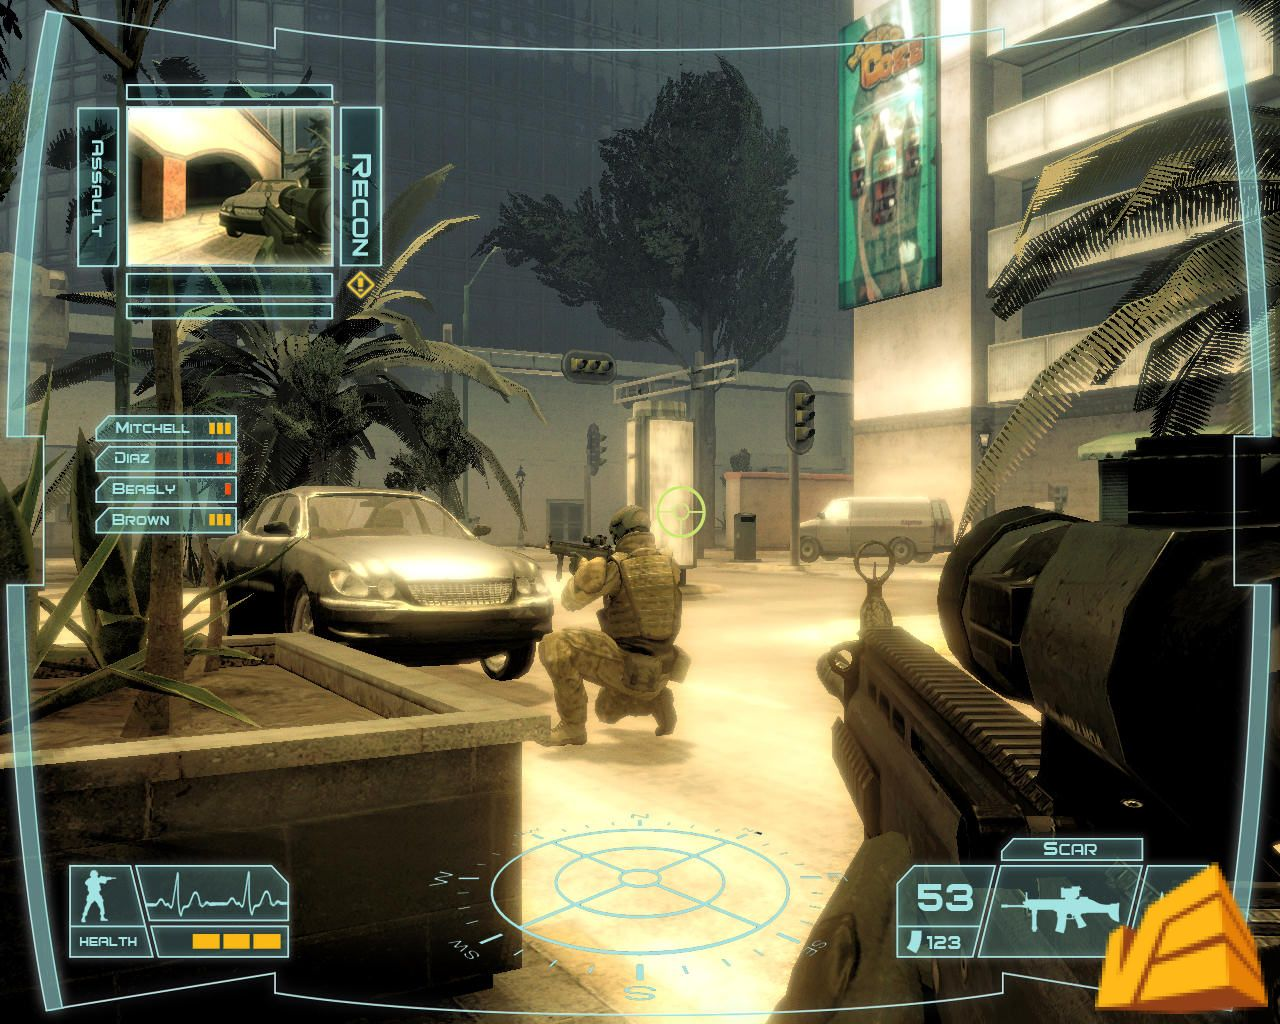 Tom clancy's ghost recon advanced warfighter 2 full game free pc.